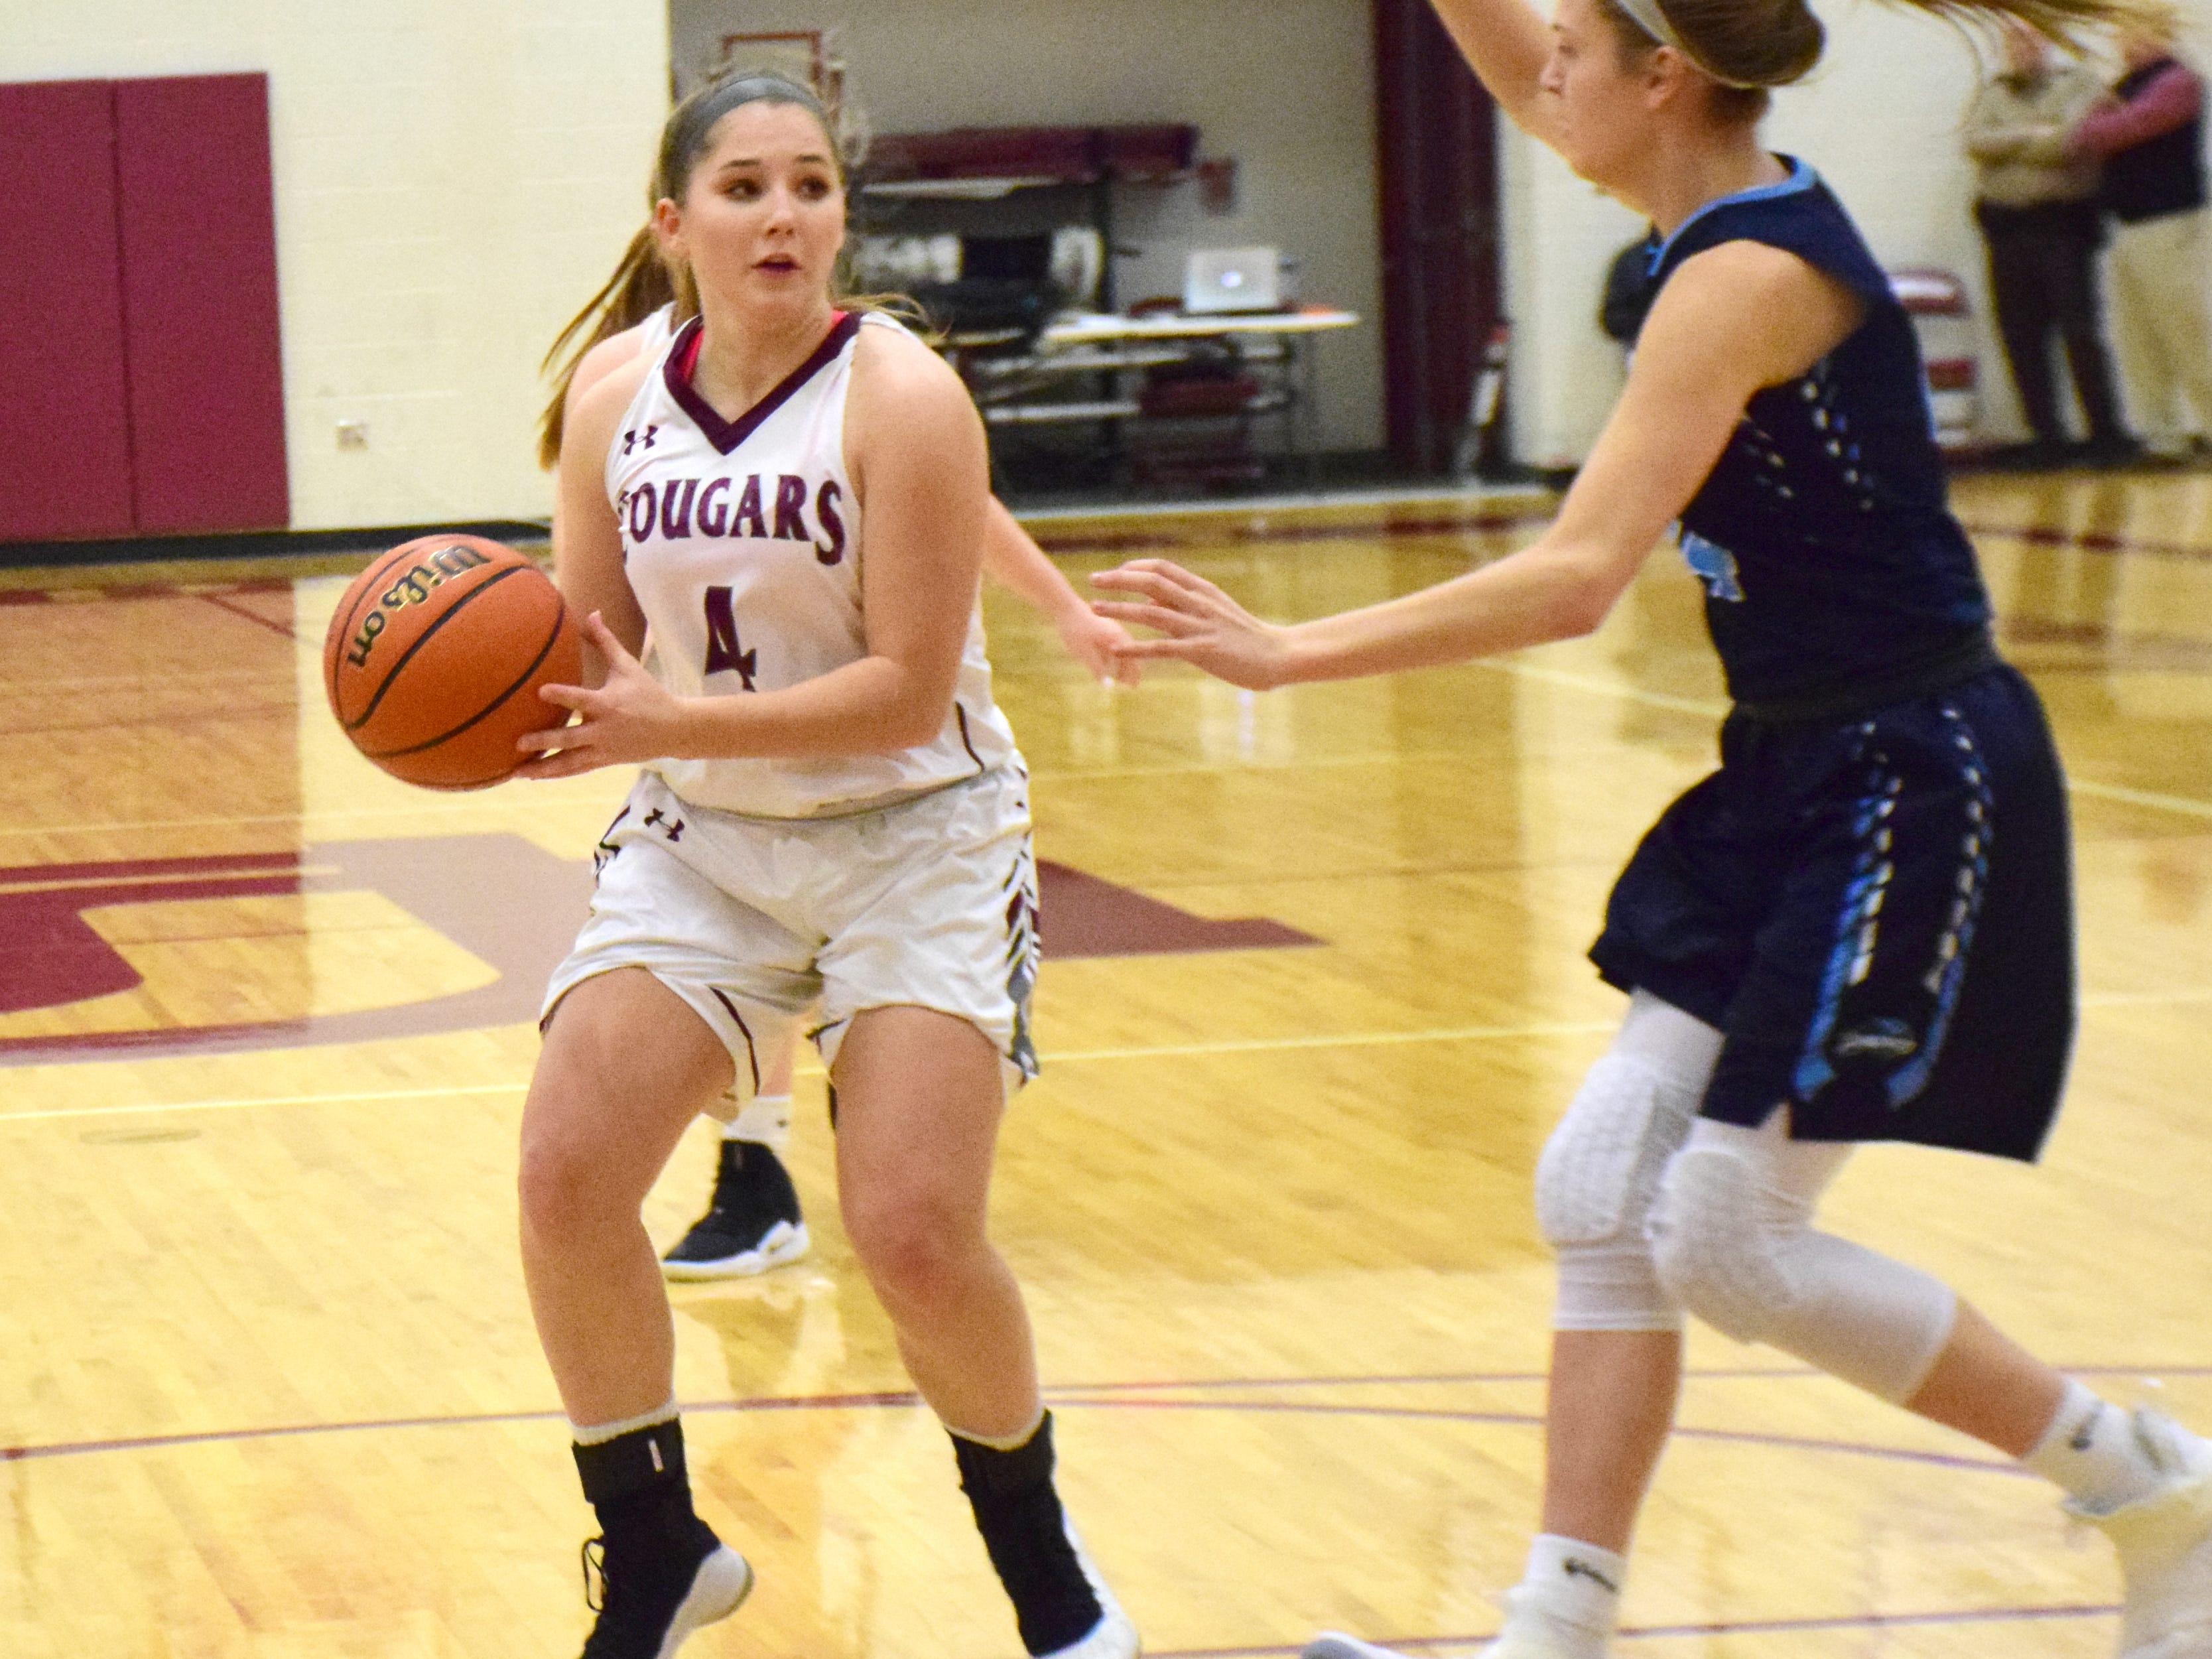 Stuarts Draft's Maggie Sorrells looks to pass in the lane against Page County during the first half of their Shenandoah District girls basketball game on Thursday, Jan. 10, 2019, at Stuarts Draft High School in Stuarts Draft, Va.